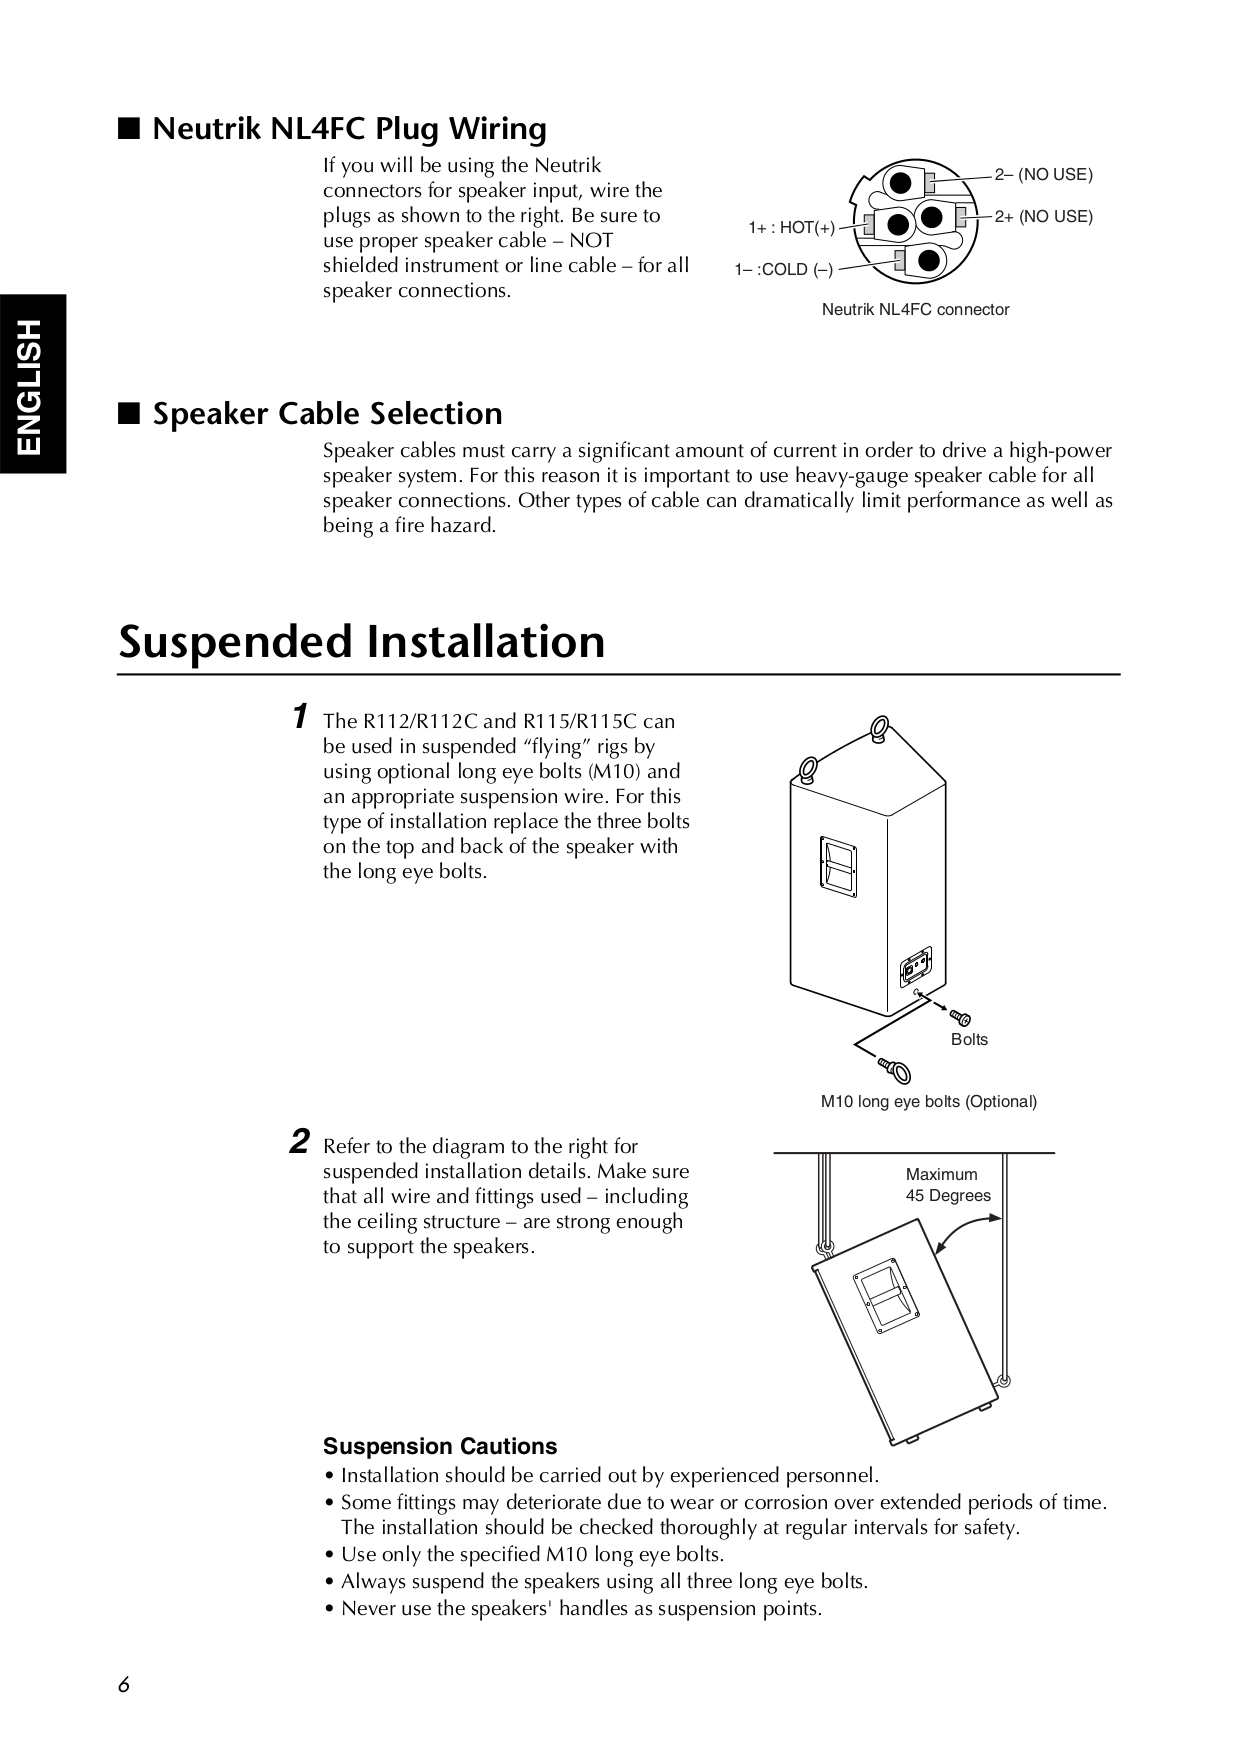 Pdf manual for yamaha speaker system r115 yamaha speaker system r115 pdf page preview greentooth Image collections